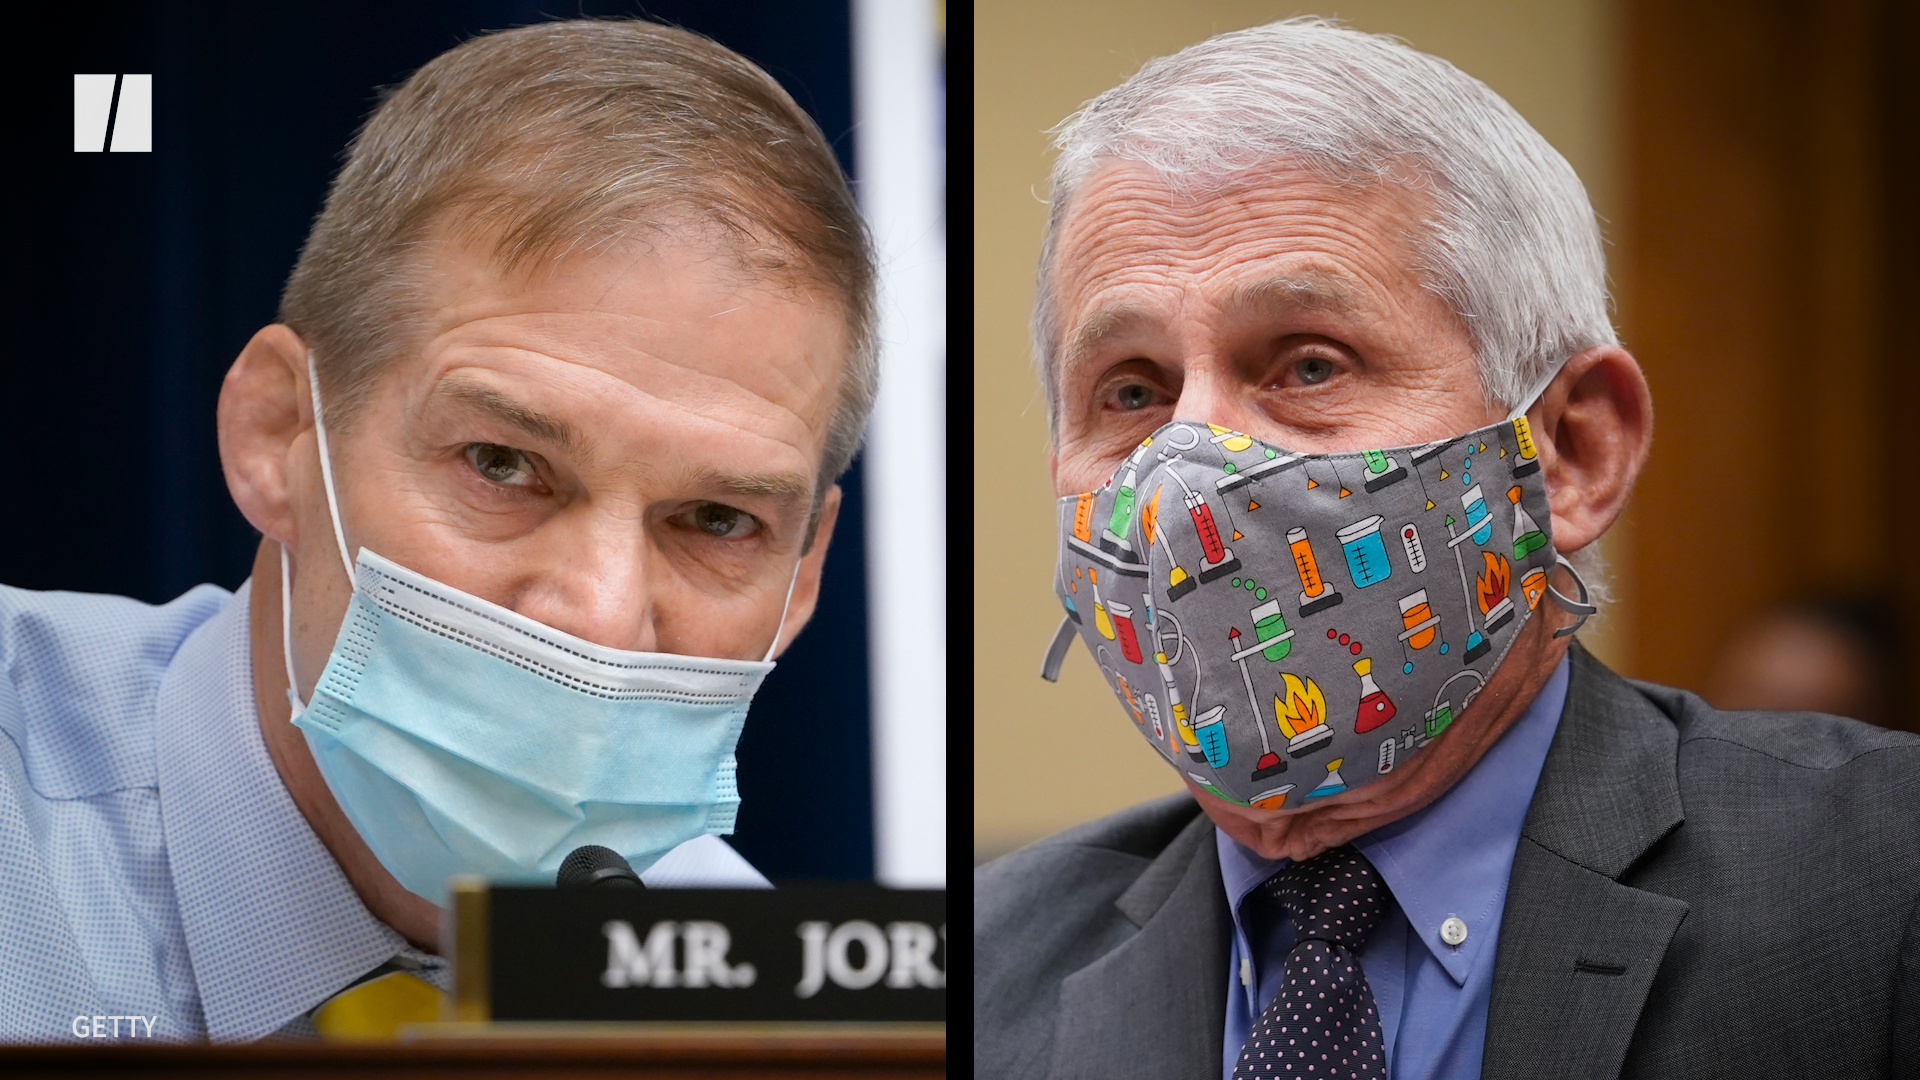 Fauci & Jim Jordan Clash Over COVID-19 Restrictions